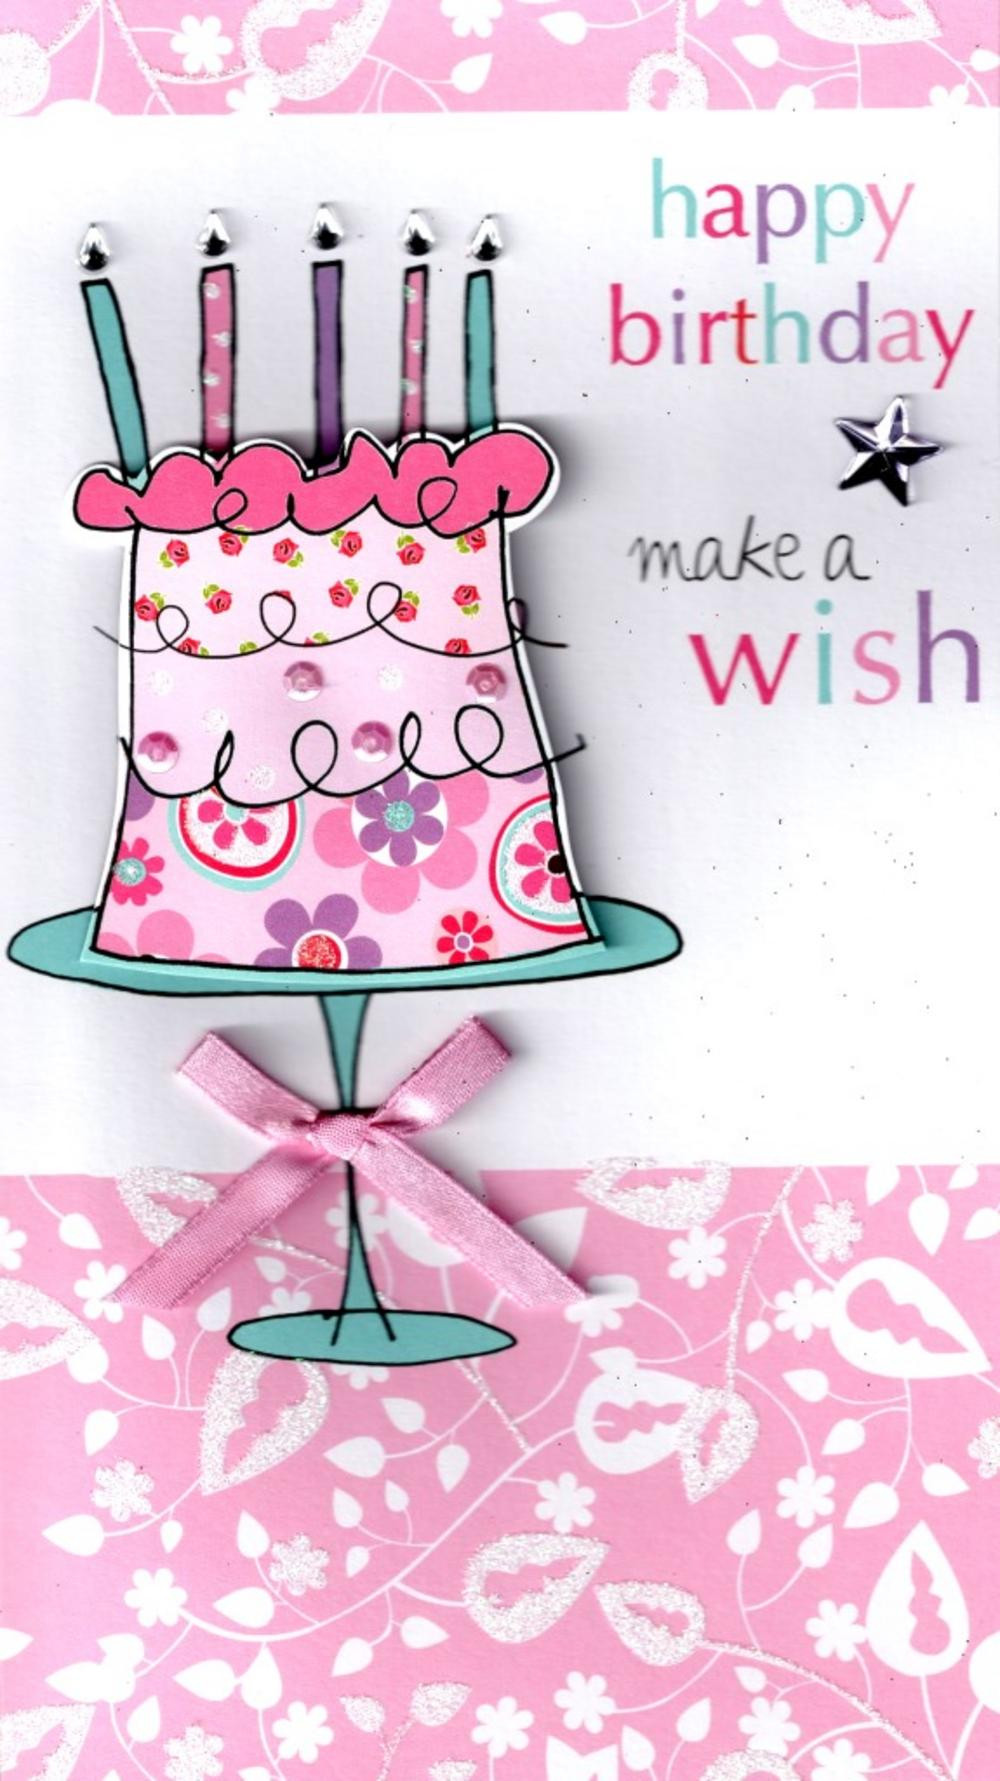 Best ideas about Make A Wish Birthday . Save or Pin Make A Wish Happy Birthday Greeting Card Now.